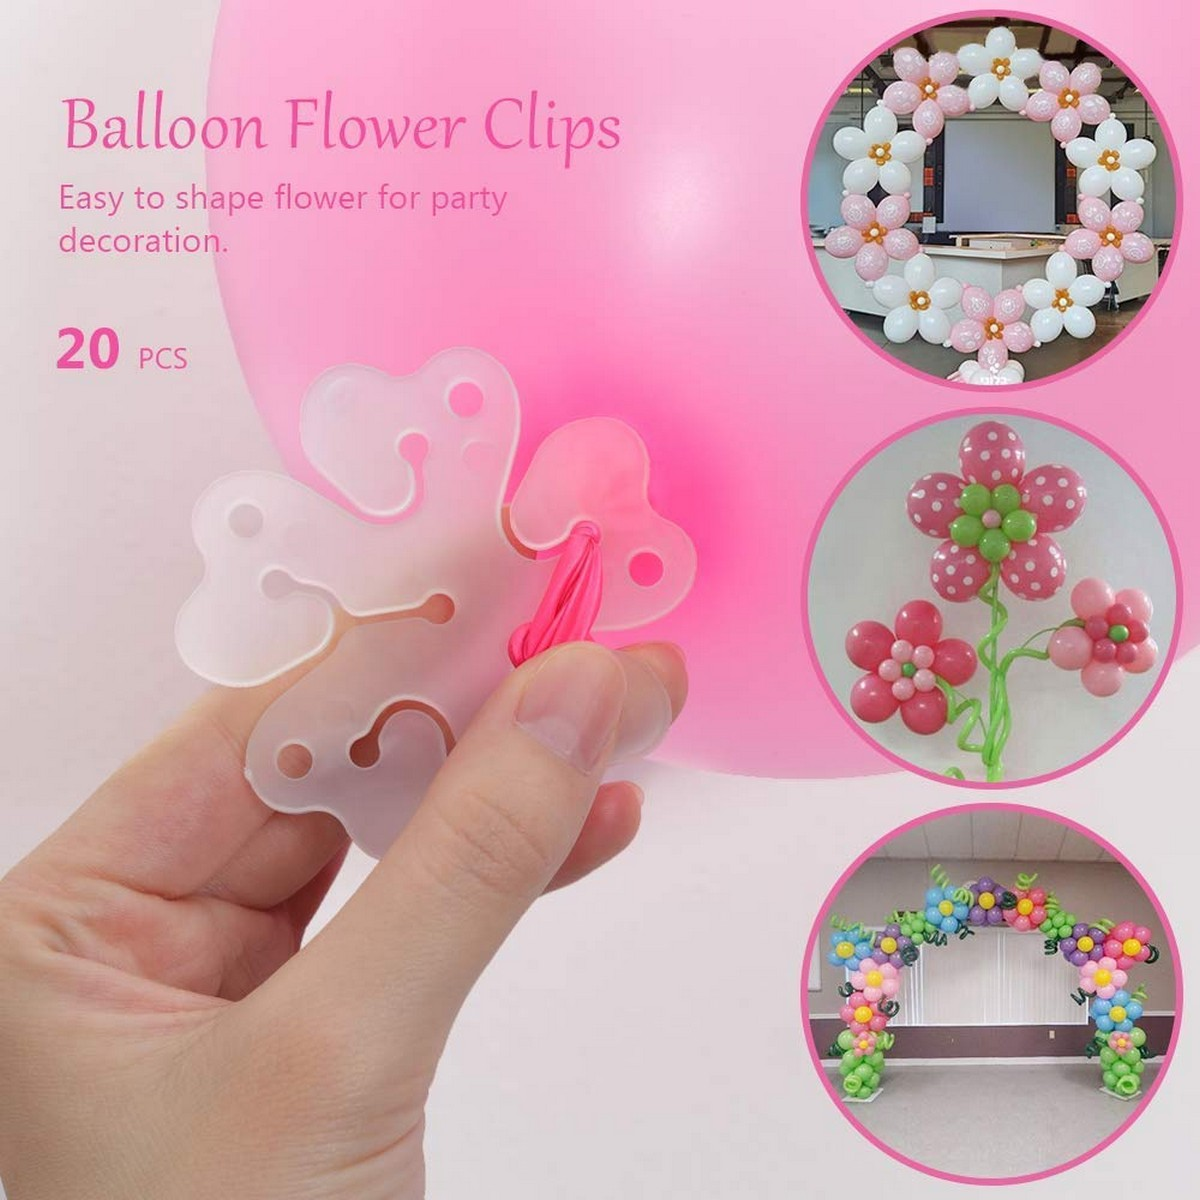 Pack of 20 pcs Balloon Flower Clips -Original Packing Plastic Flower Balloon Clips Closures - Make Flower Design Balloon for Wedding Birthday Party Holiday Decoration.